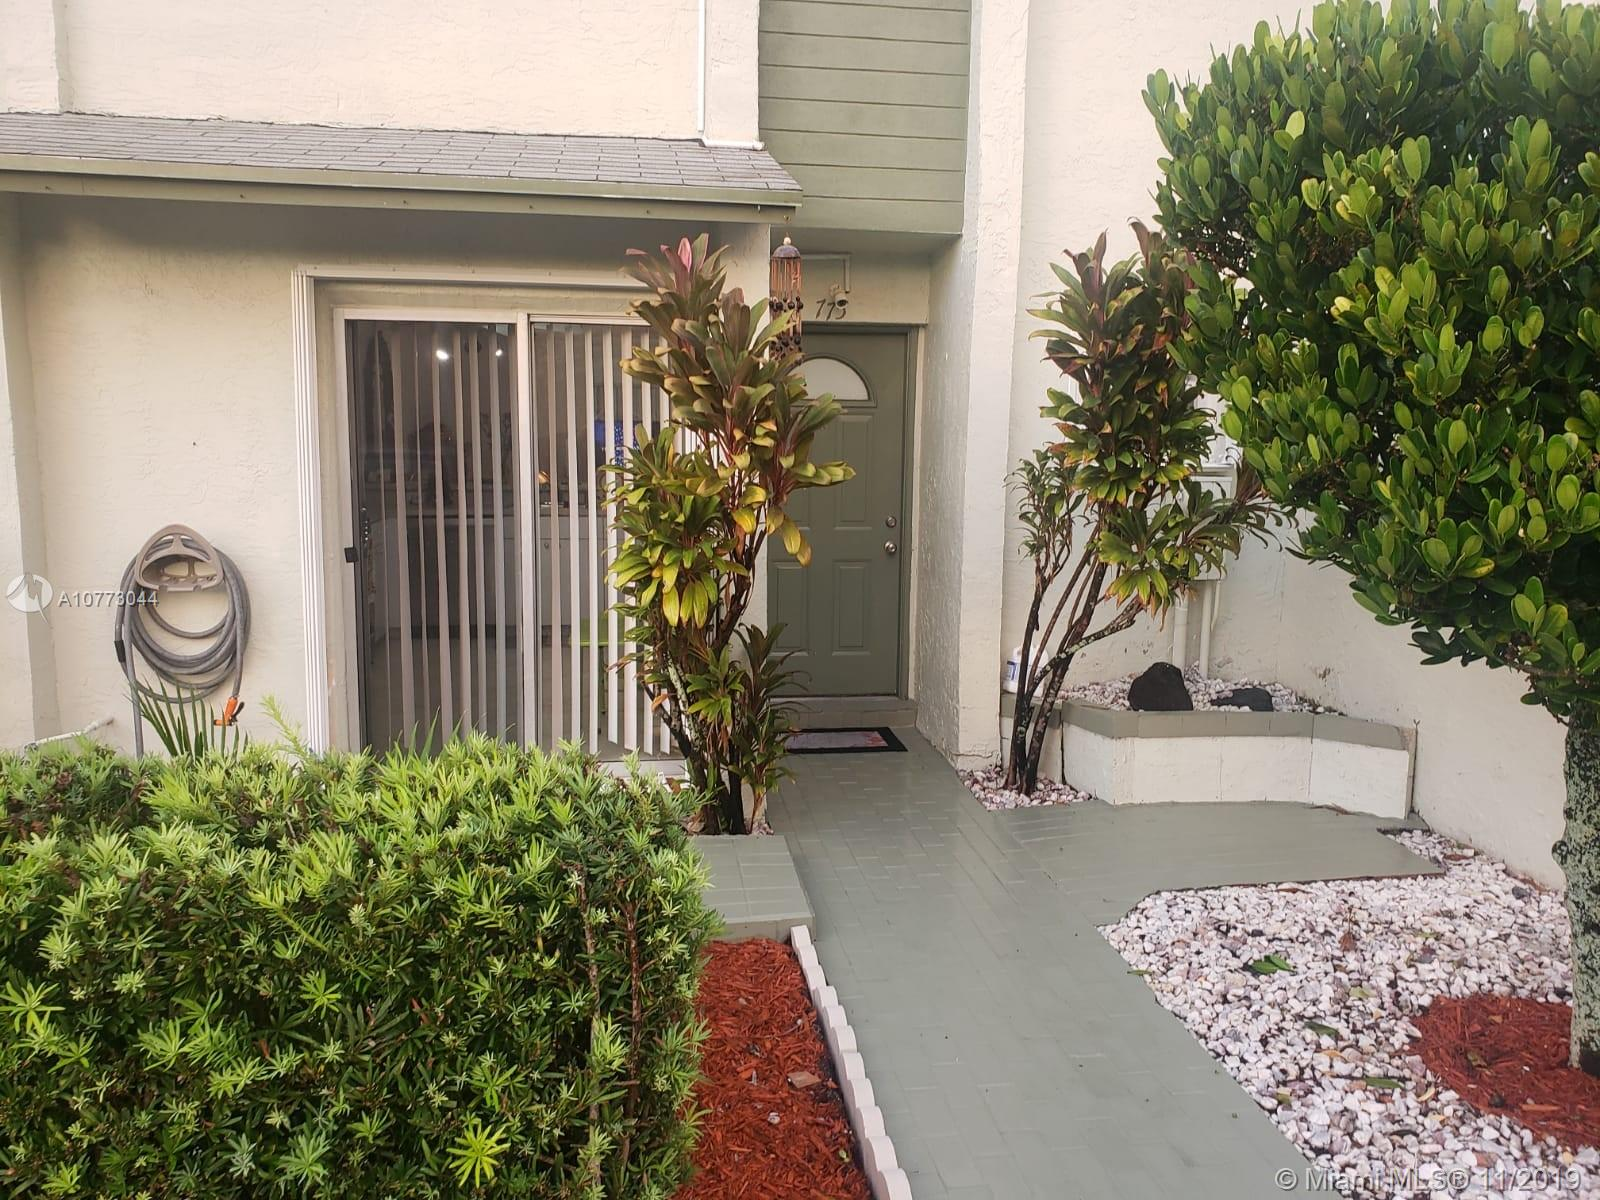 Updated 2/2.5 townhome conveniently located in Deerfield close to I-95, Turnpike, shops and restaurants. No carpet! Tiled on First Floor. Laminate flooring on stairs and second floor. Freshly painted. New Hurricane Accordion Shutters installed in 2018. Air Handler 1 year old. Updated kitchen with new stainless steel appliances. Bathrooms recently updated with new vanities. Each bedroom has their own bathroom and walk in closets. Separate Laundry area on first floor with full size washer/dryer. Security system with 4 cameras, 2 in the front and 2 in back of property. Nice backyard with screened porch patio. 2 Parking spaces conveniently located in front of your door plus guest parking. Come and enjoy the Community pool and club house.